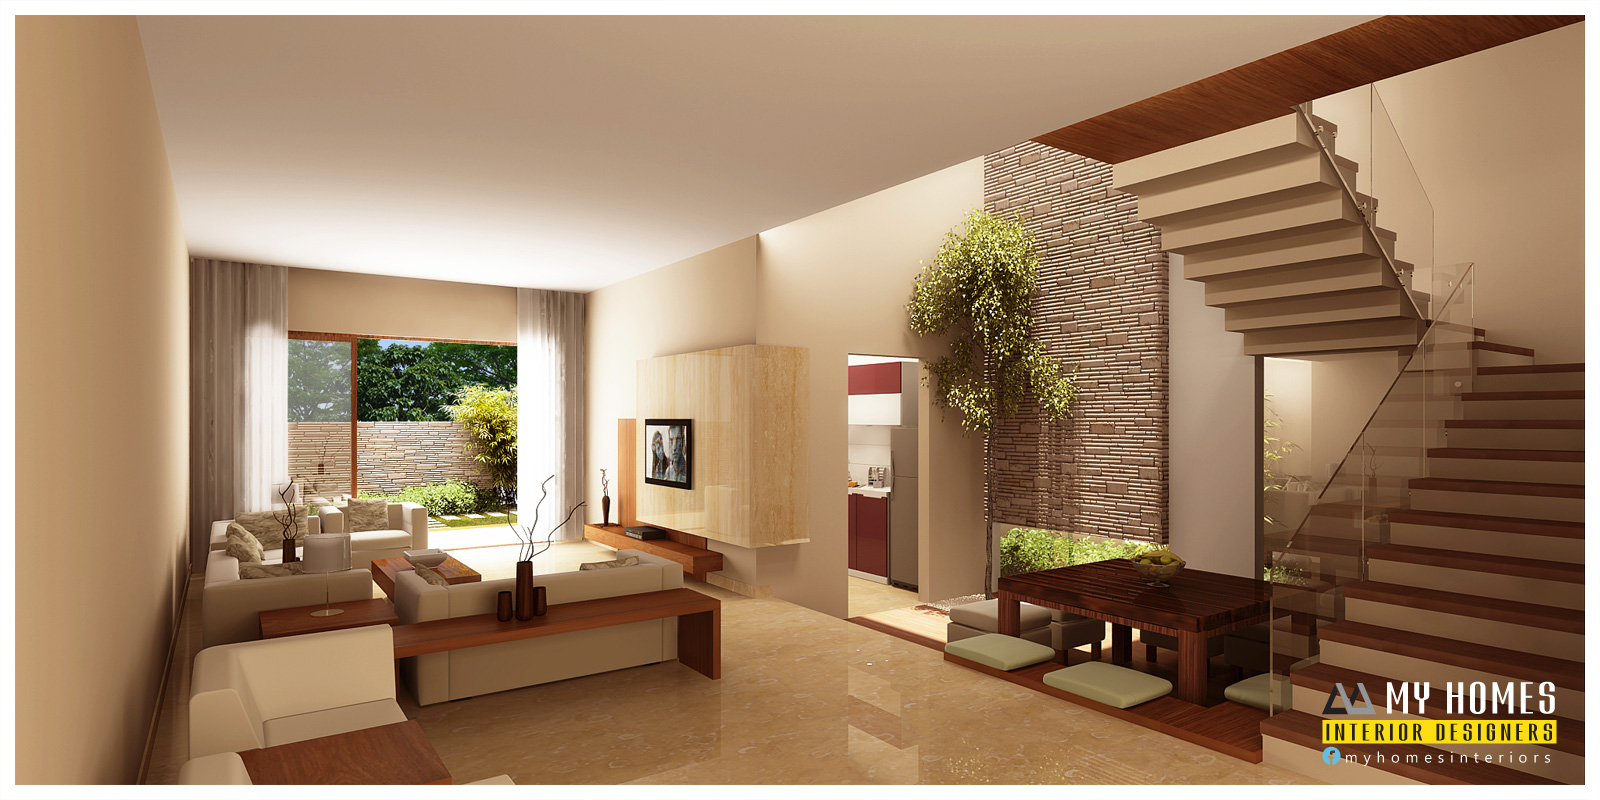 Kerala interior design ideas from designing company thrissur for Interior designs in house